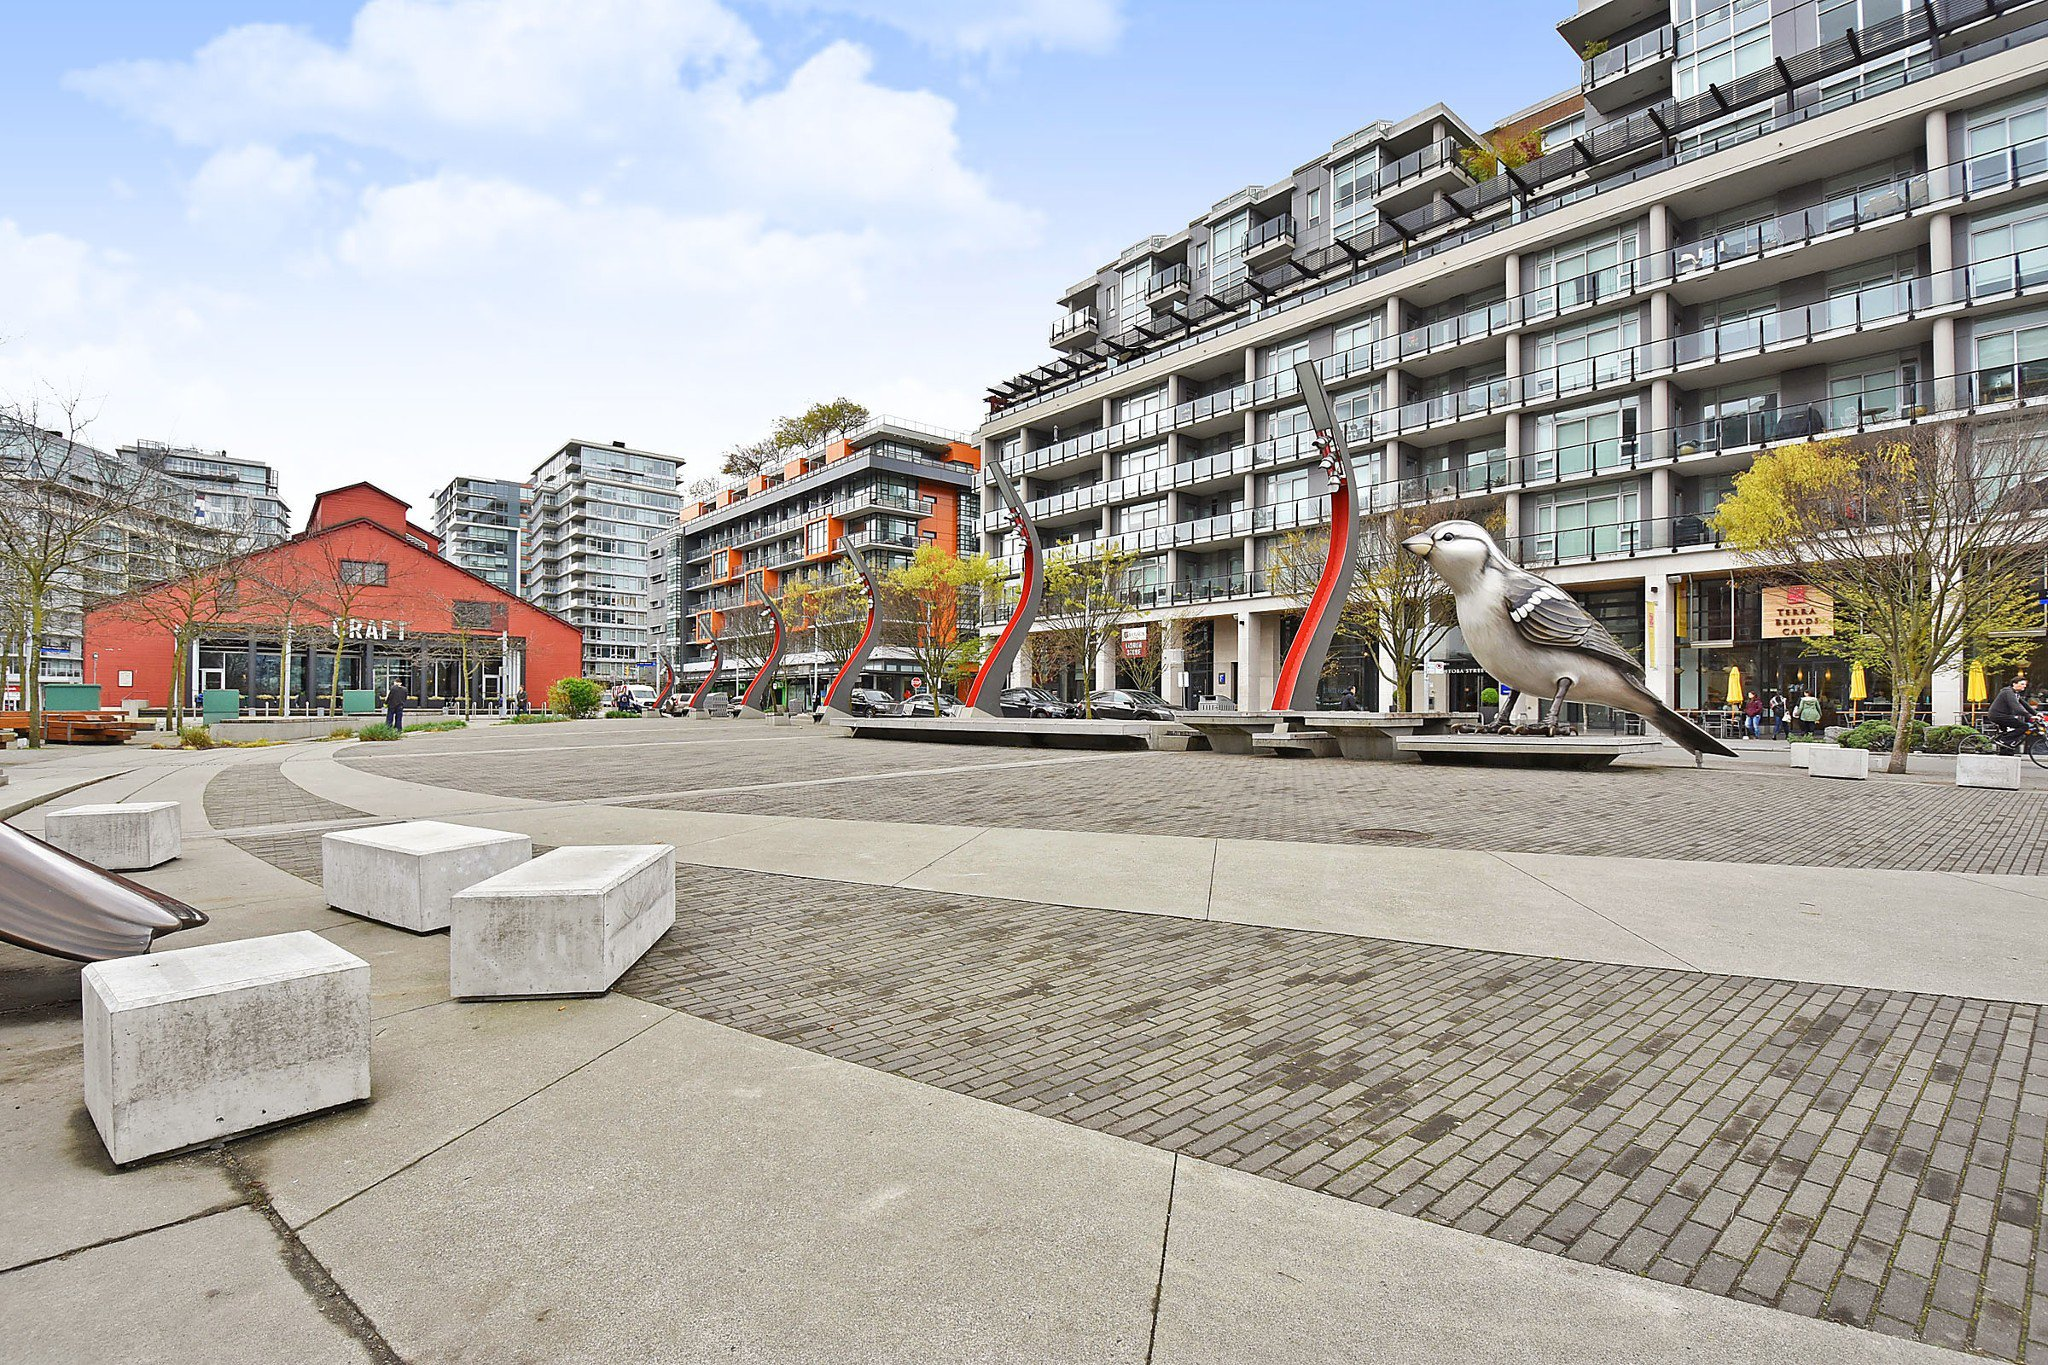 Photo 20: Photos: 306 138 W 1ST AVENUE in Vancouver: False Creek Condo for sale (Vancouver West)  : MLS®# R2360592